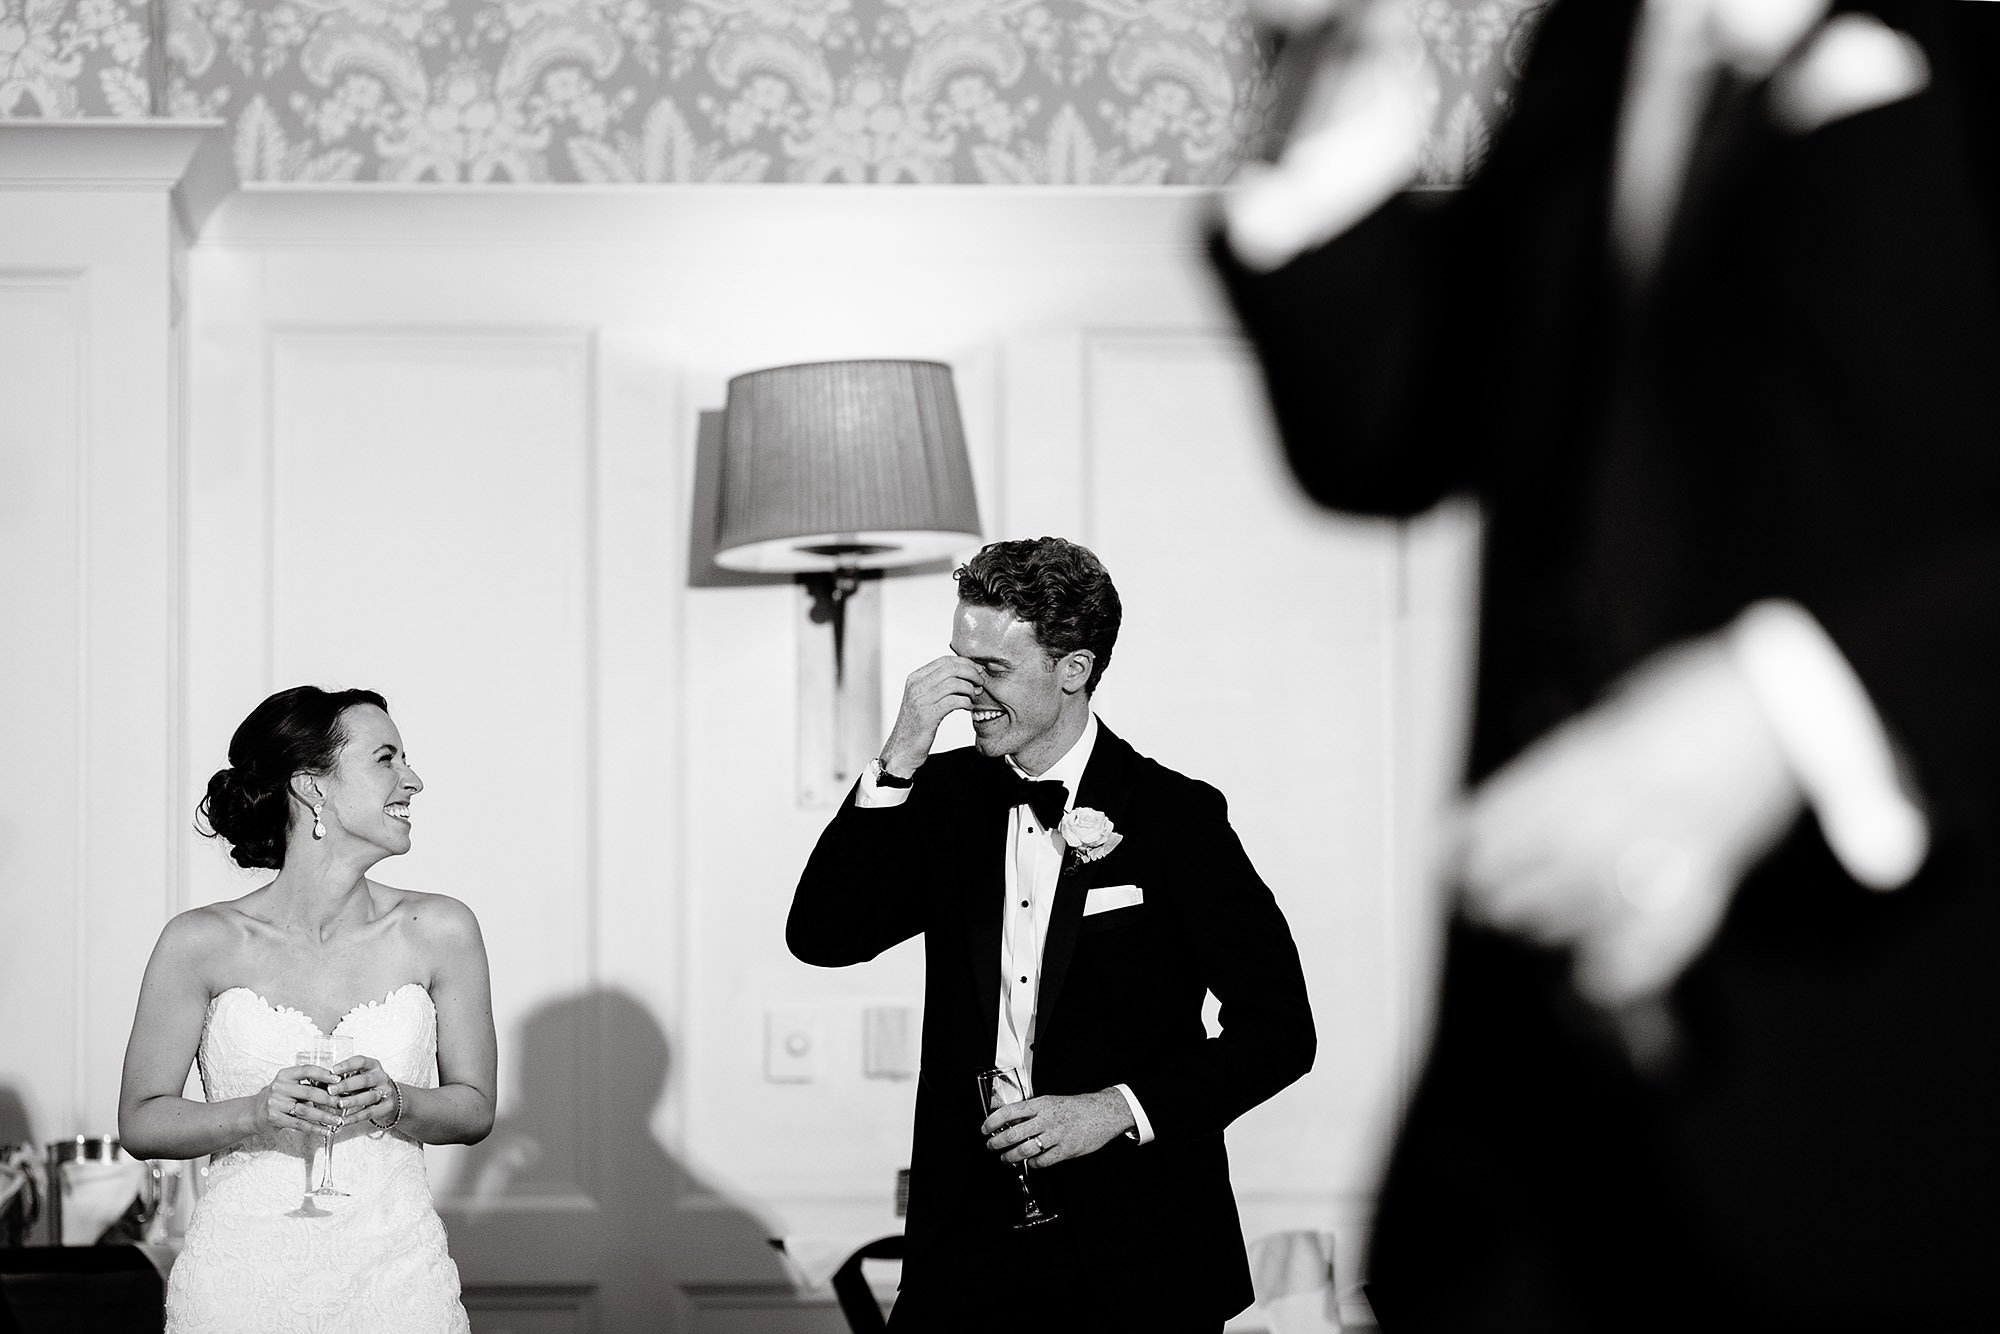 The bride and groom respond to the best man toast.